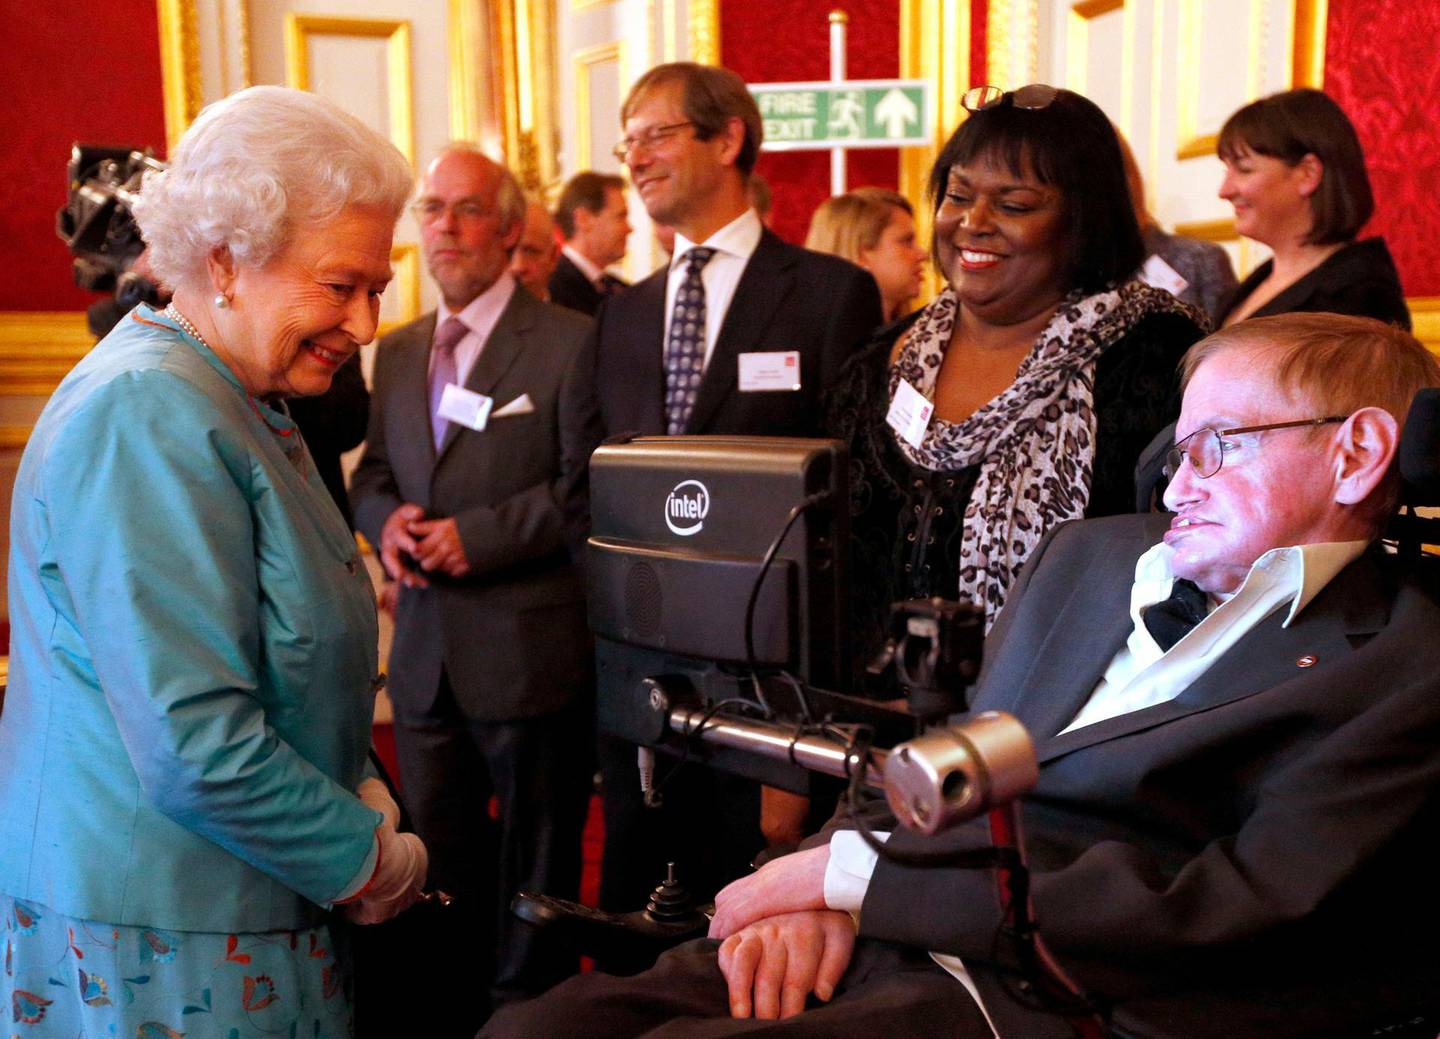 FILE - In this May 29, 2014 file photo, Britain's Queen Elizabeth II meets Professor Stephen Hawking, during a reception for Leonard Cheshire Disability in the State Rooms, St James's Palace, London. Hawking, whose brilliant mind ranged across time and space though his body was paralyzed by disease, has died, a family spokesman said early Wednesday, March 14, 2018. (Jonathan Brady/PA via AP)